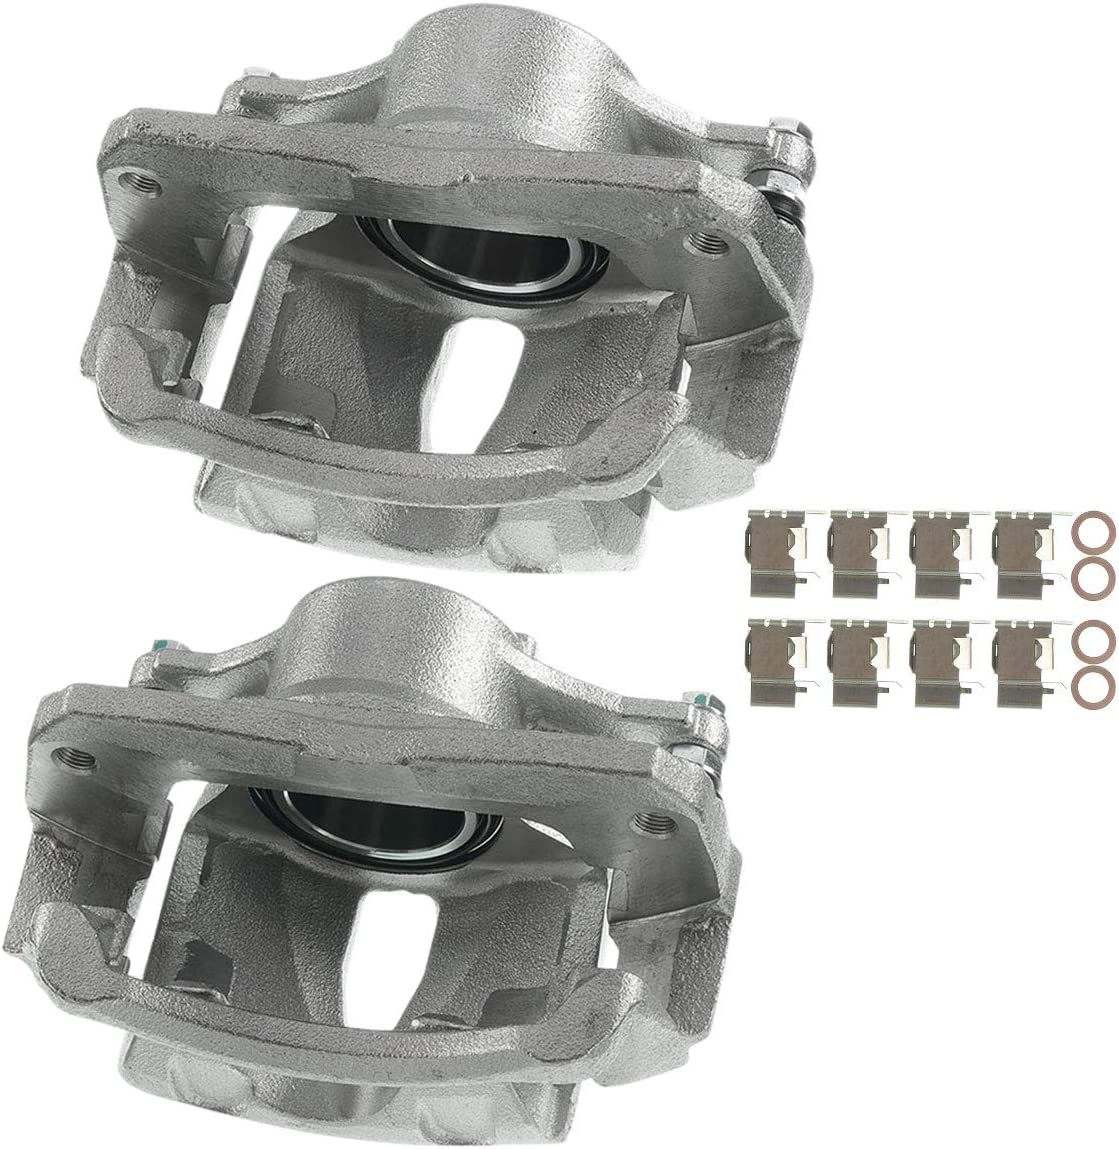 A-Premium Disc Brake Caliper Assembly Bracket wi Compatible Fashion with Ranking TOP4